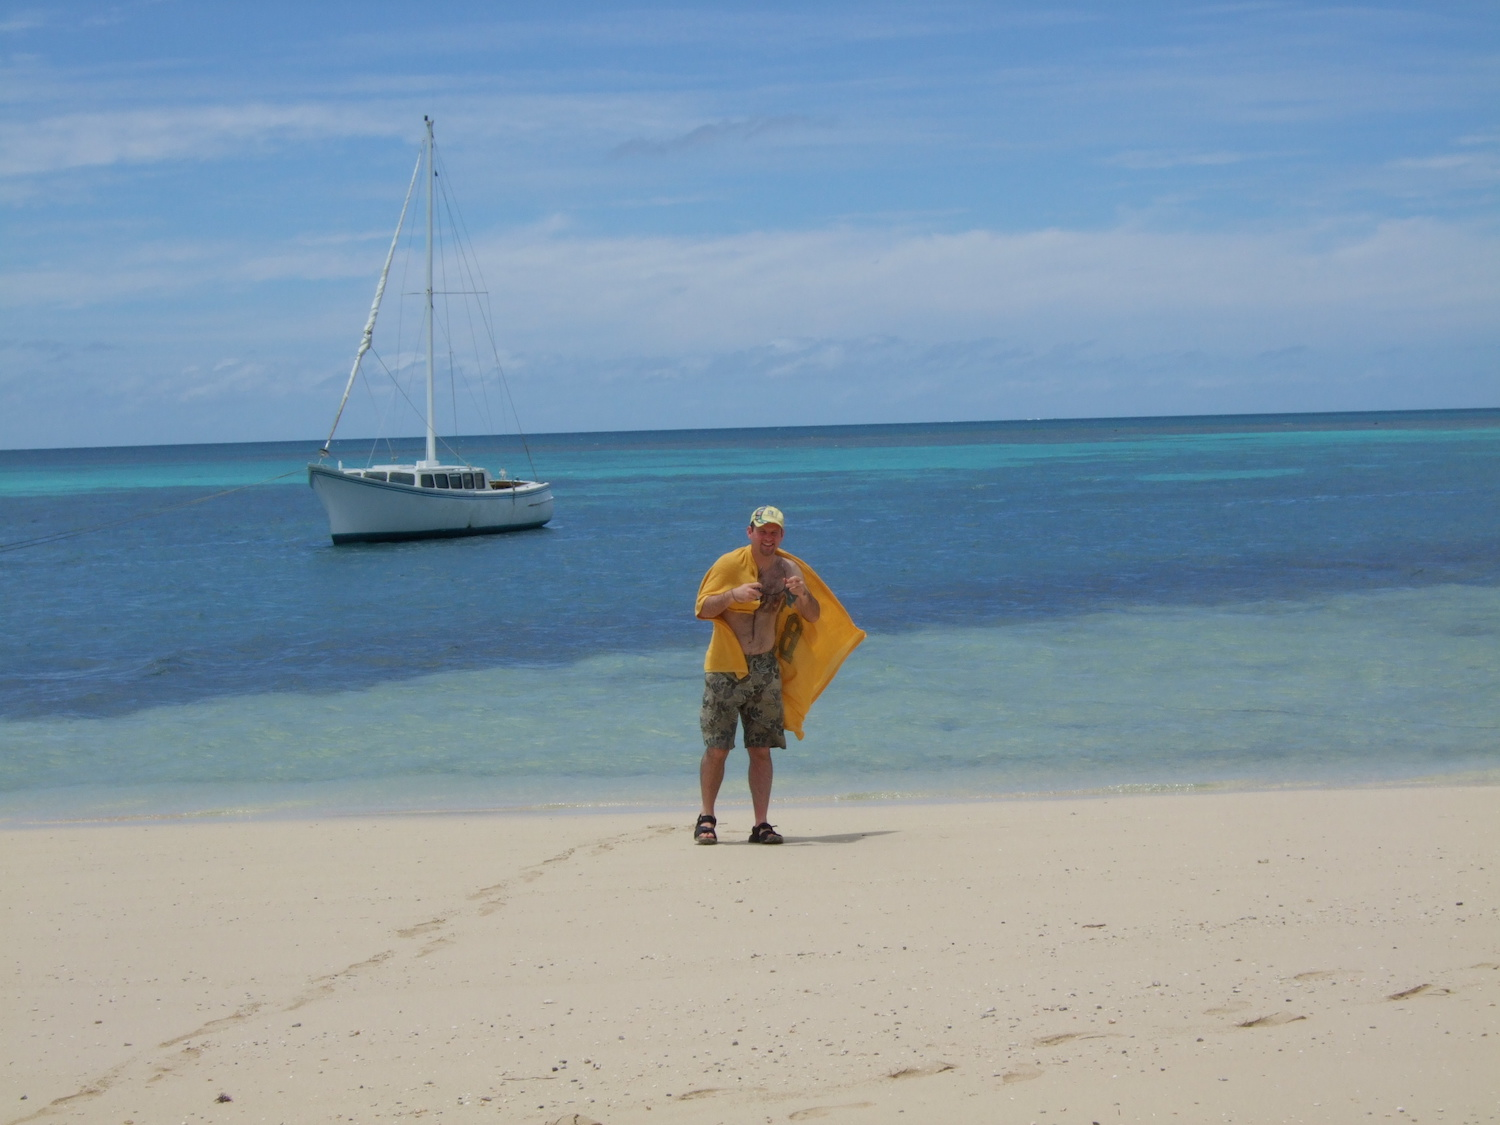 Pic: Ruining a perfectly good seascape - the author at Fafa Island Resort